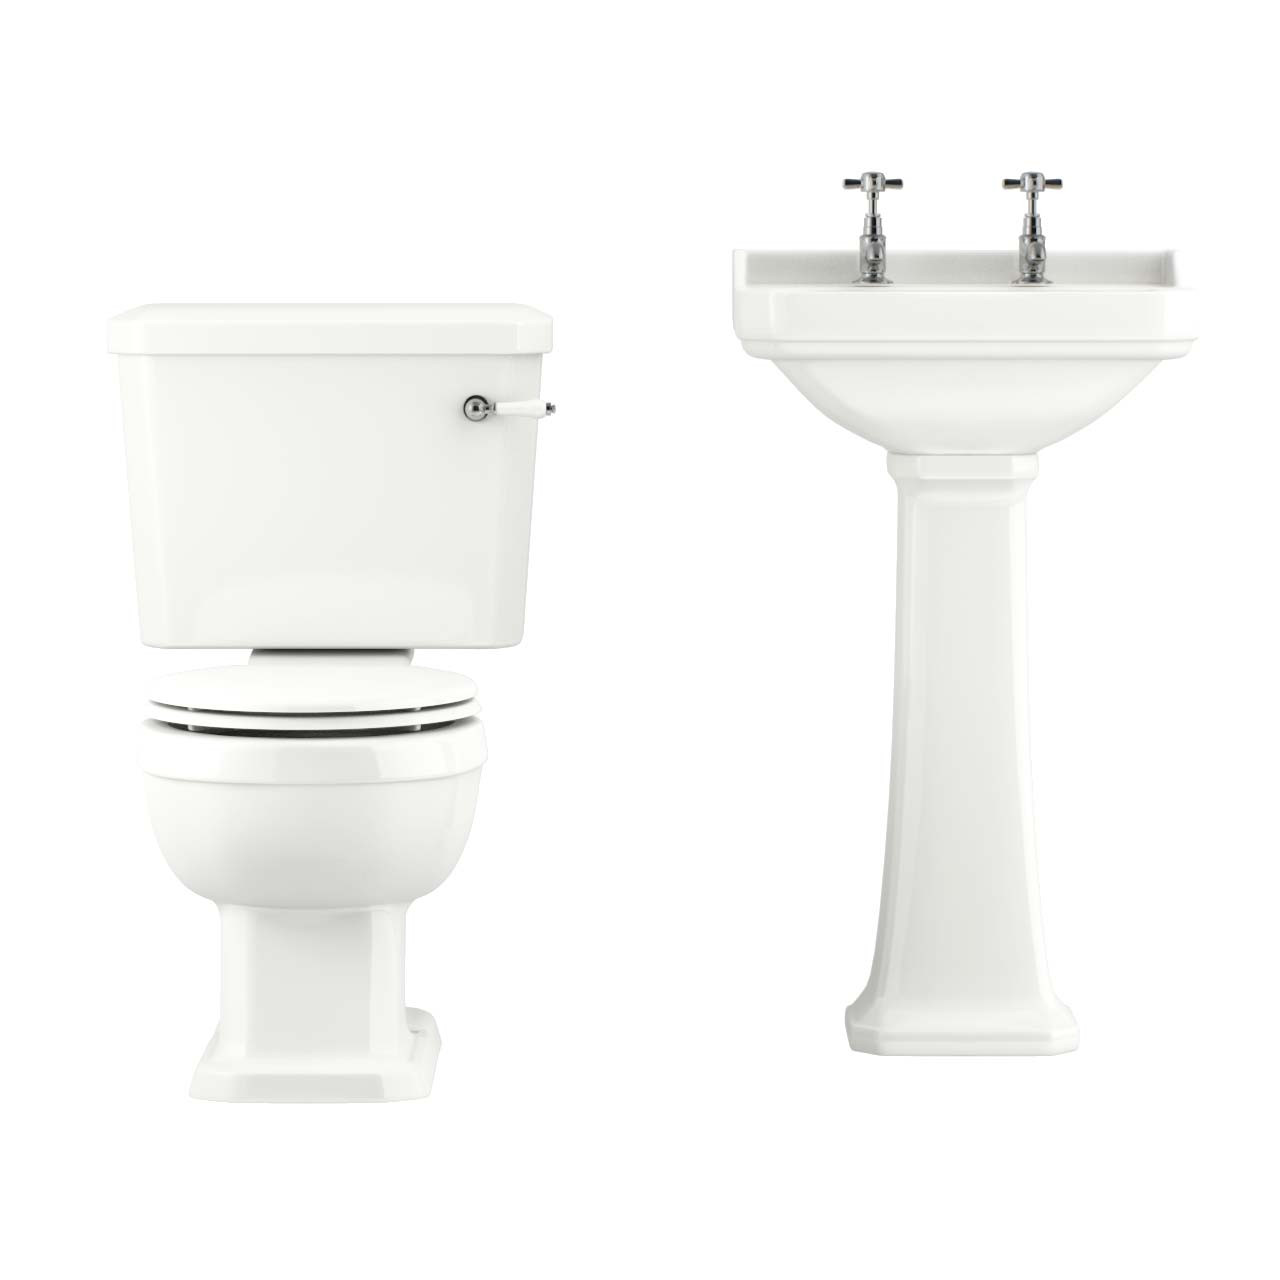 Windsor 500mm Full Pedestal Basin & Toilet Suite